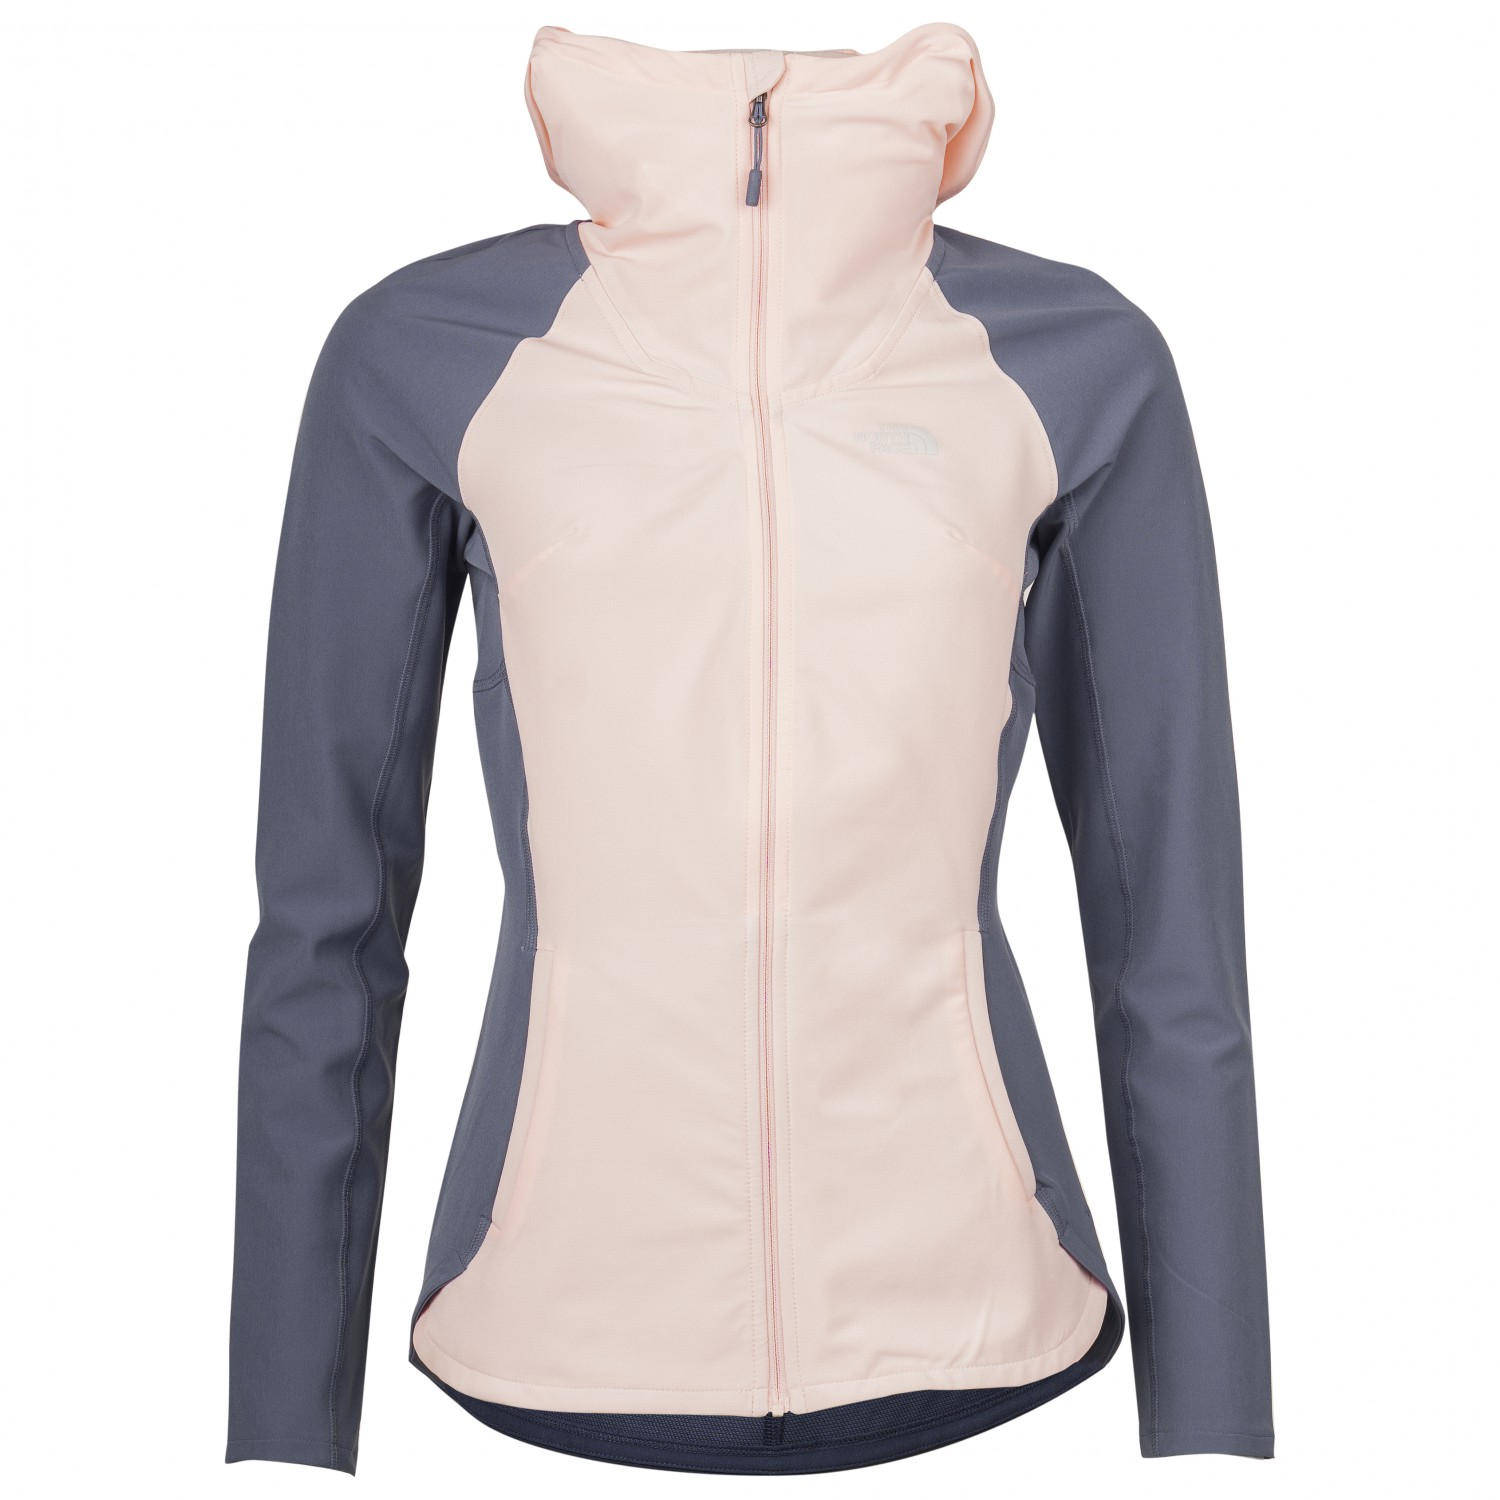 997f08ff5a The North Face - Women's Invene Softshell Jacket - Softshell jacket ...